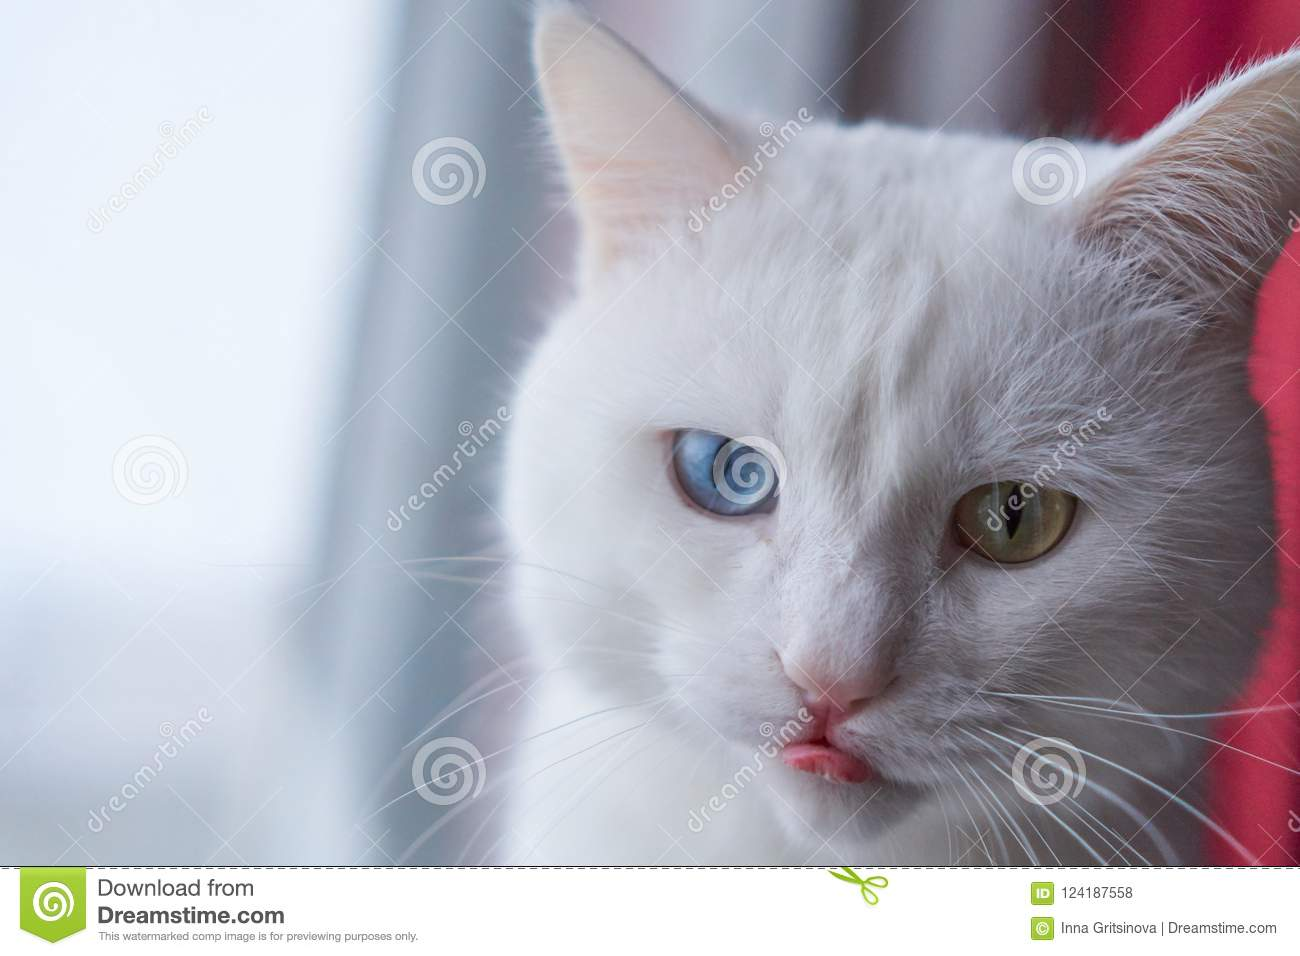 Cat With 2 Different Colored Eyes Heterocromatic Eyes A Turkish